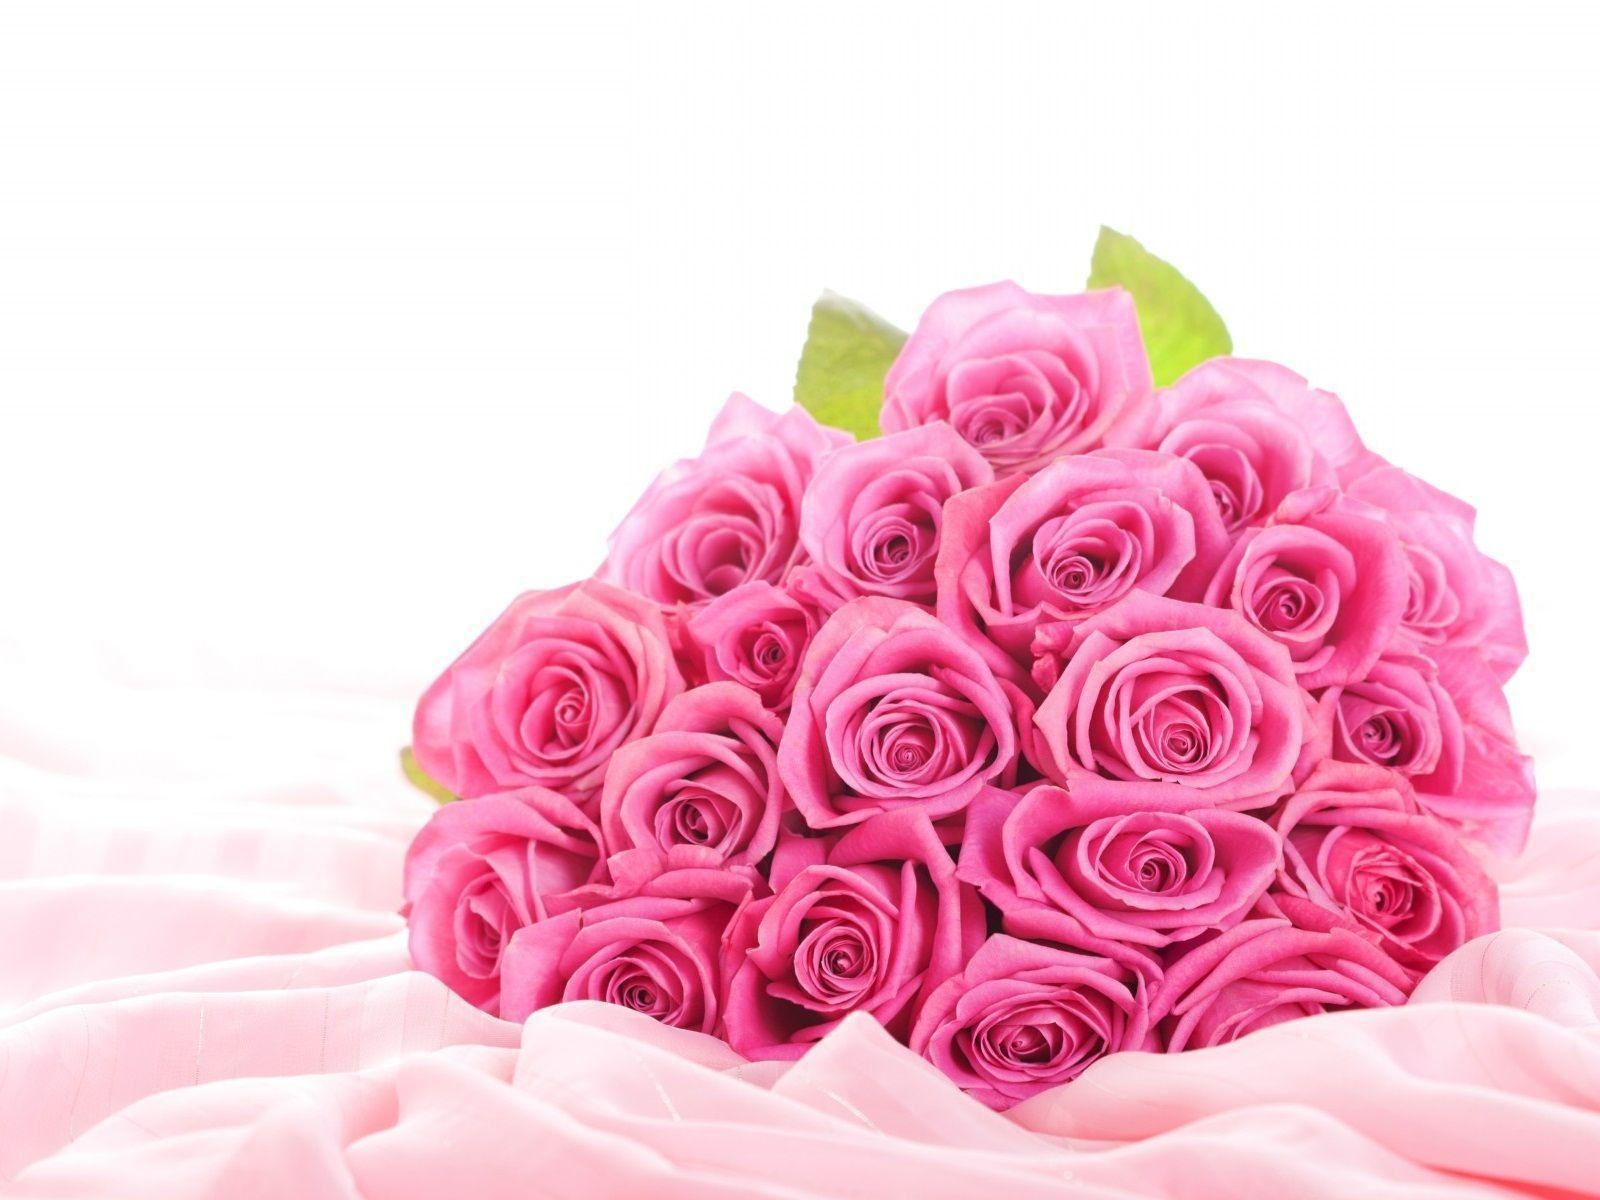 Cute Pink Rose Wallpaper Backgrounds Wallpapers